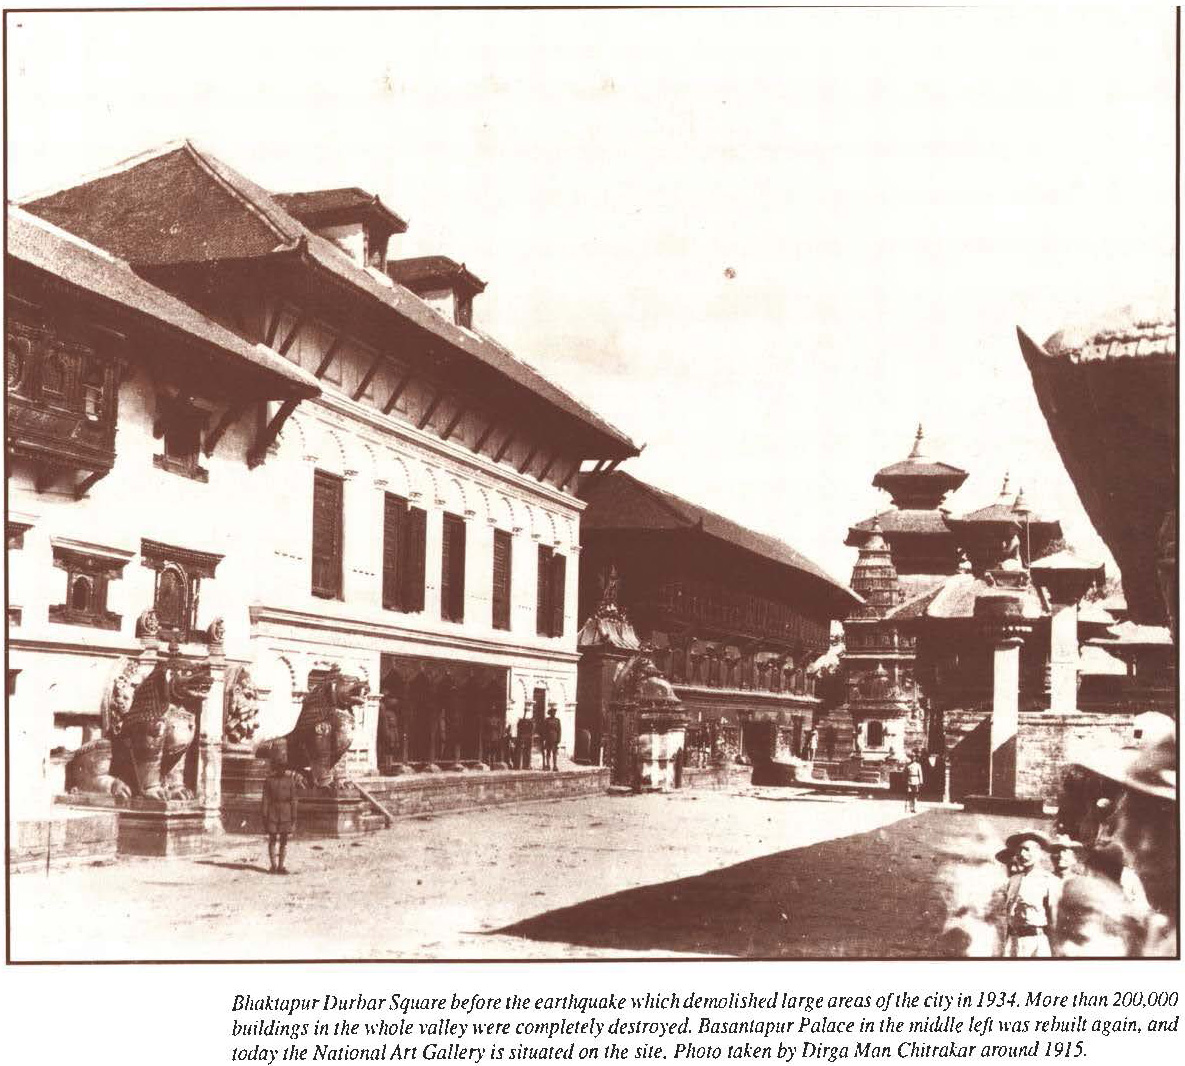 Bhaktapur durbar Square around 1915 AD image